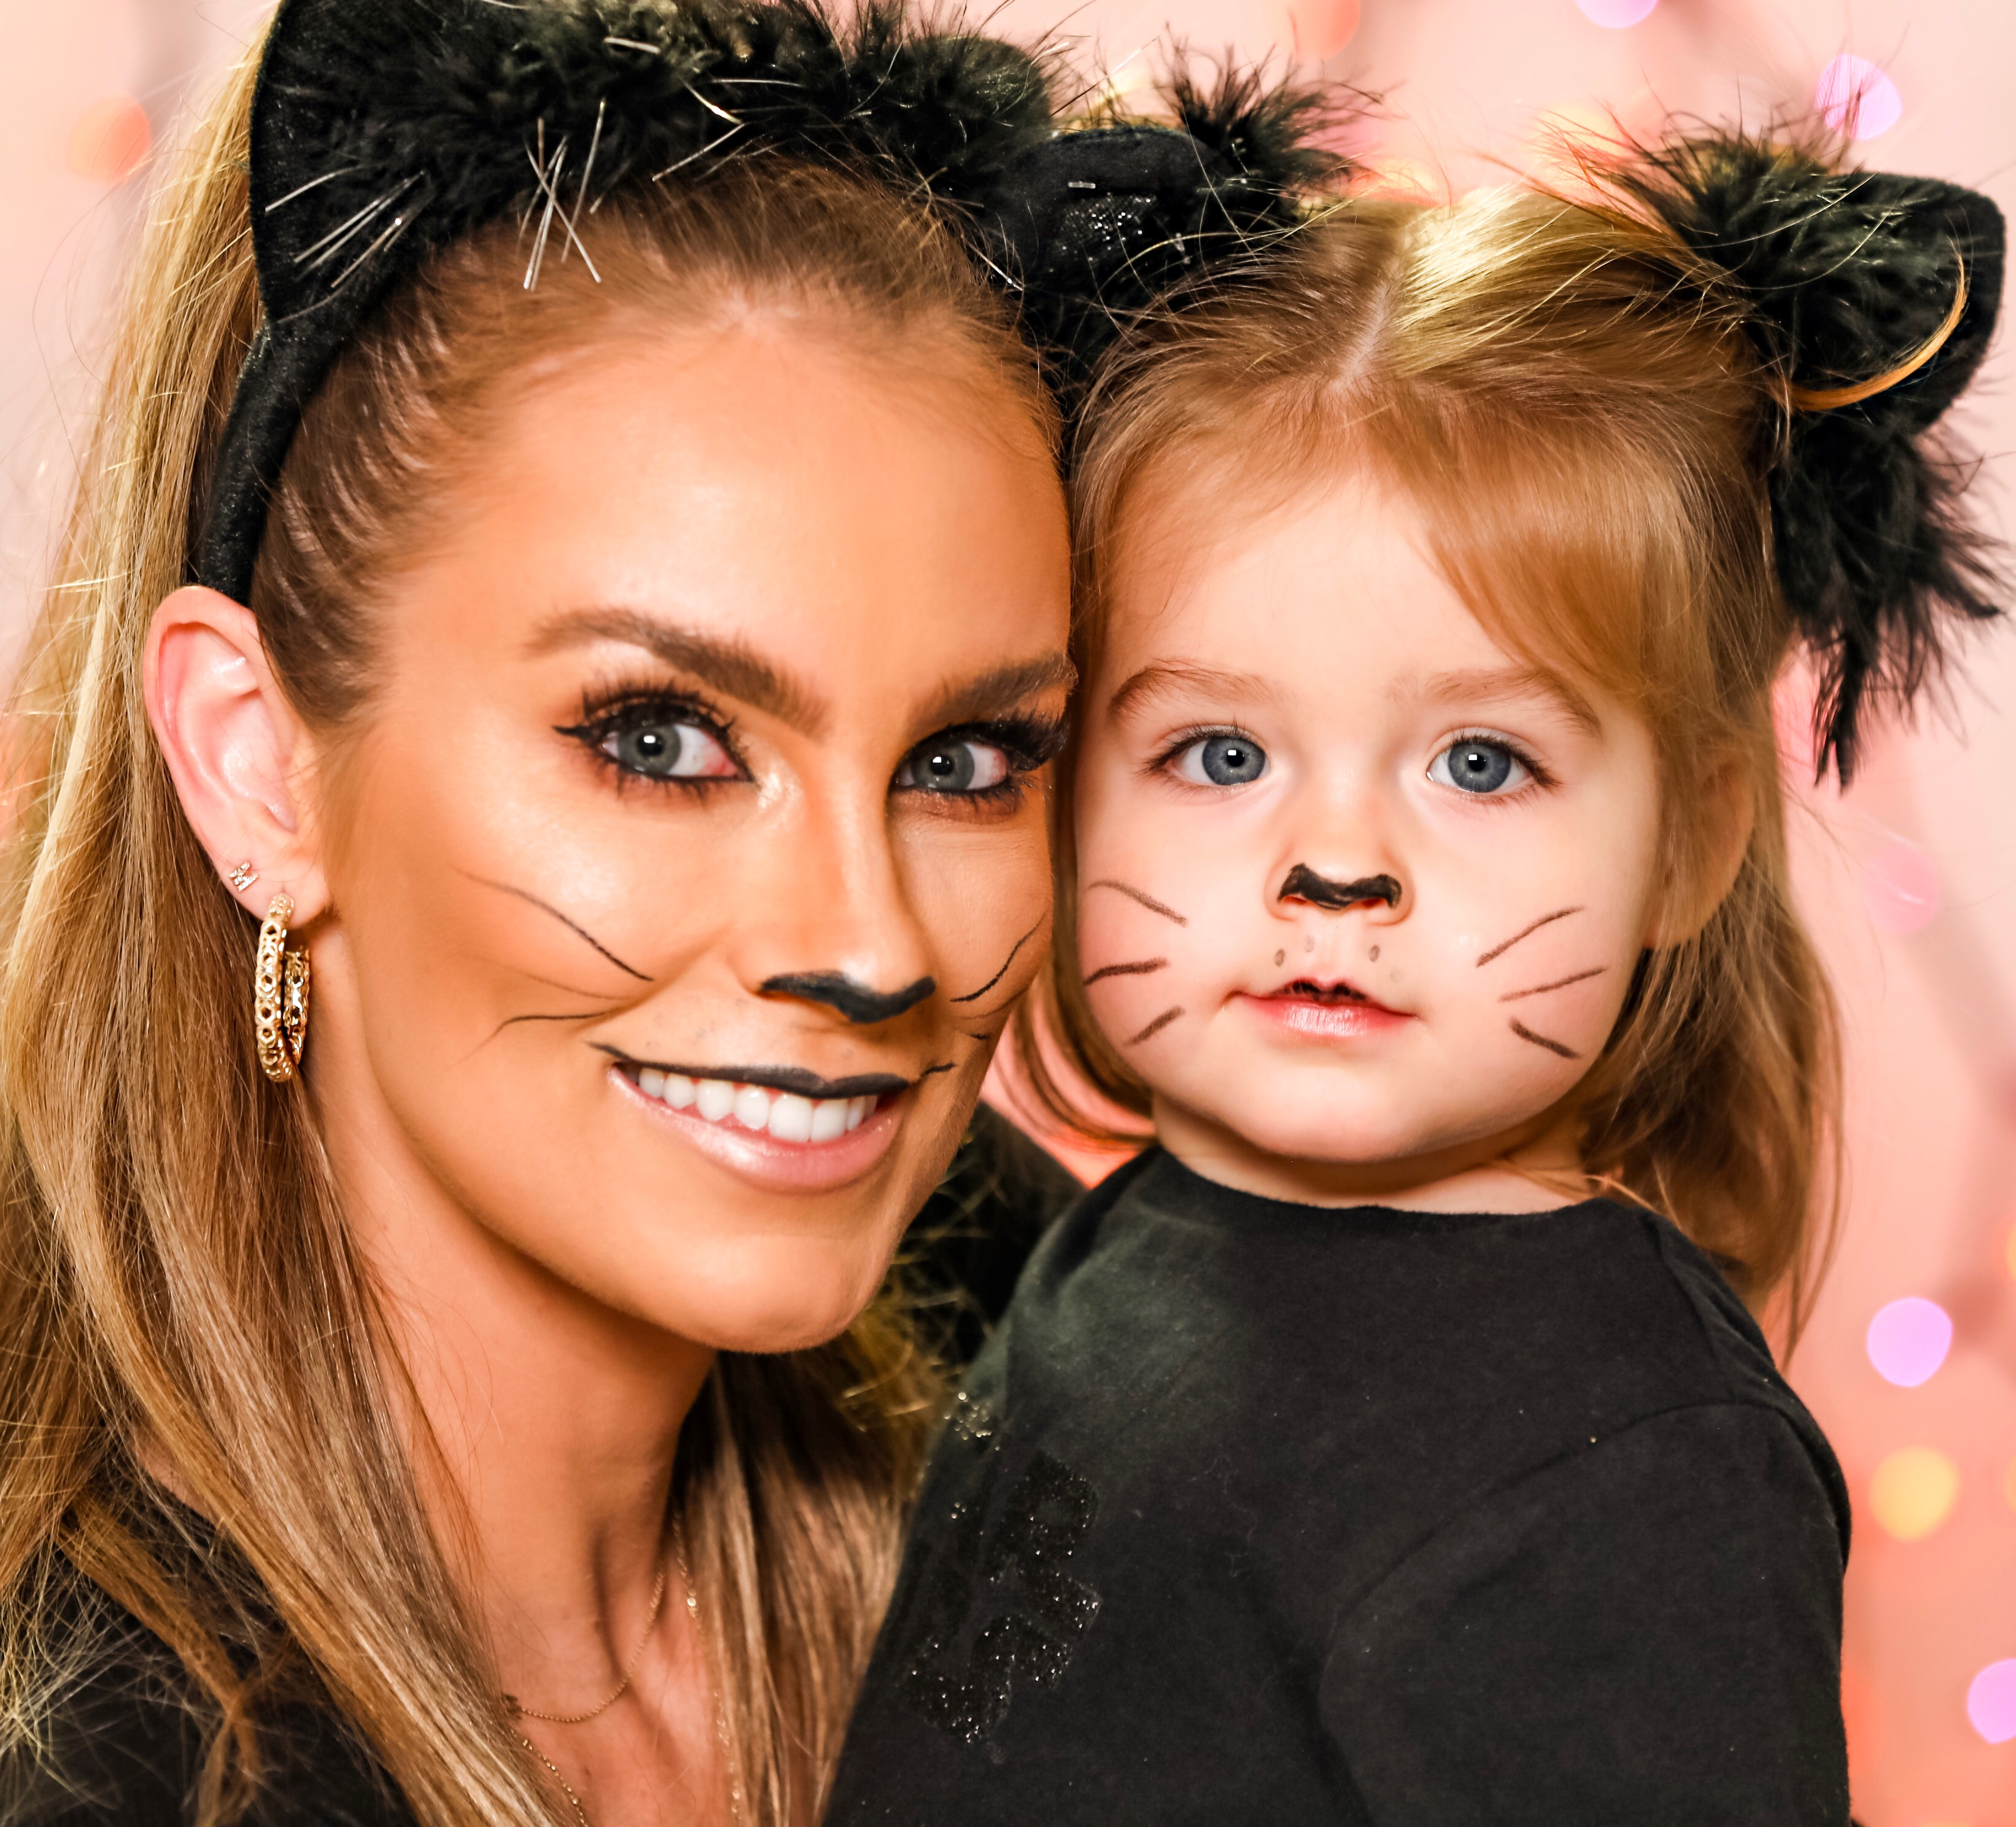 Halloween 2019 Angela Lanter Hello Gorgeous Cat Mommy and Me Costume Makeup Tutorial